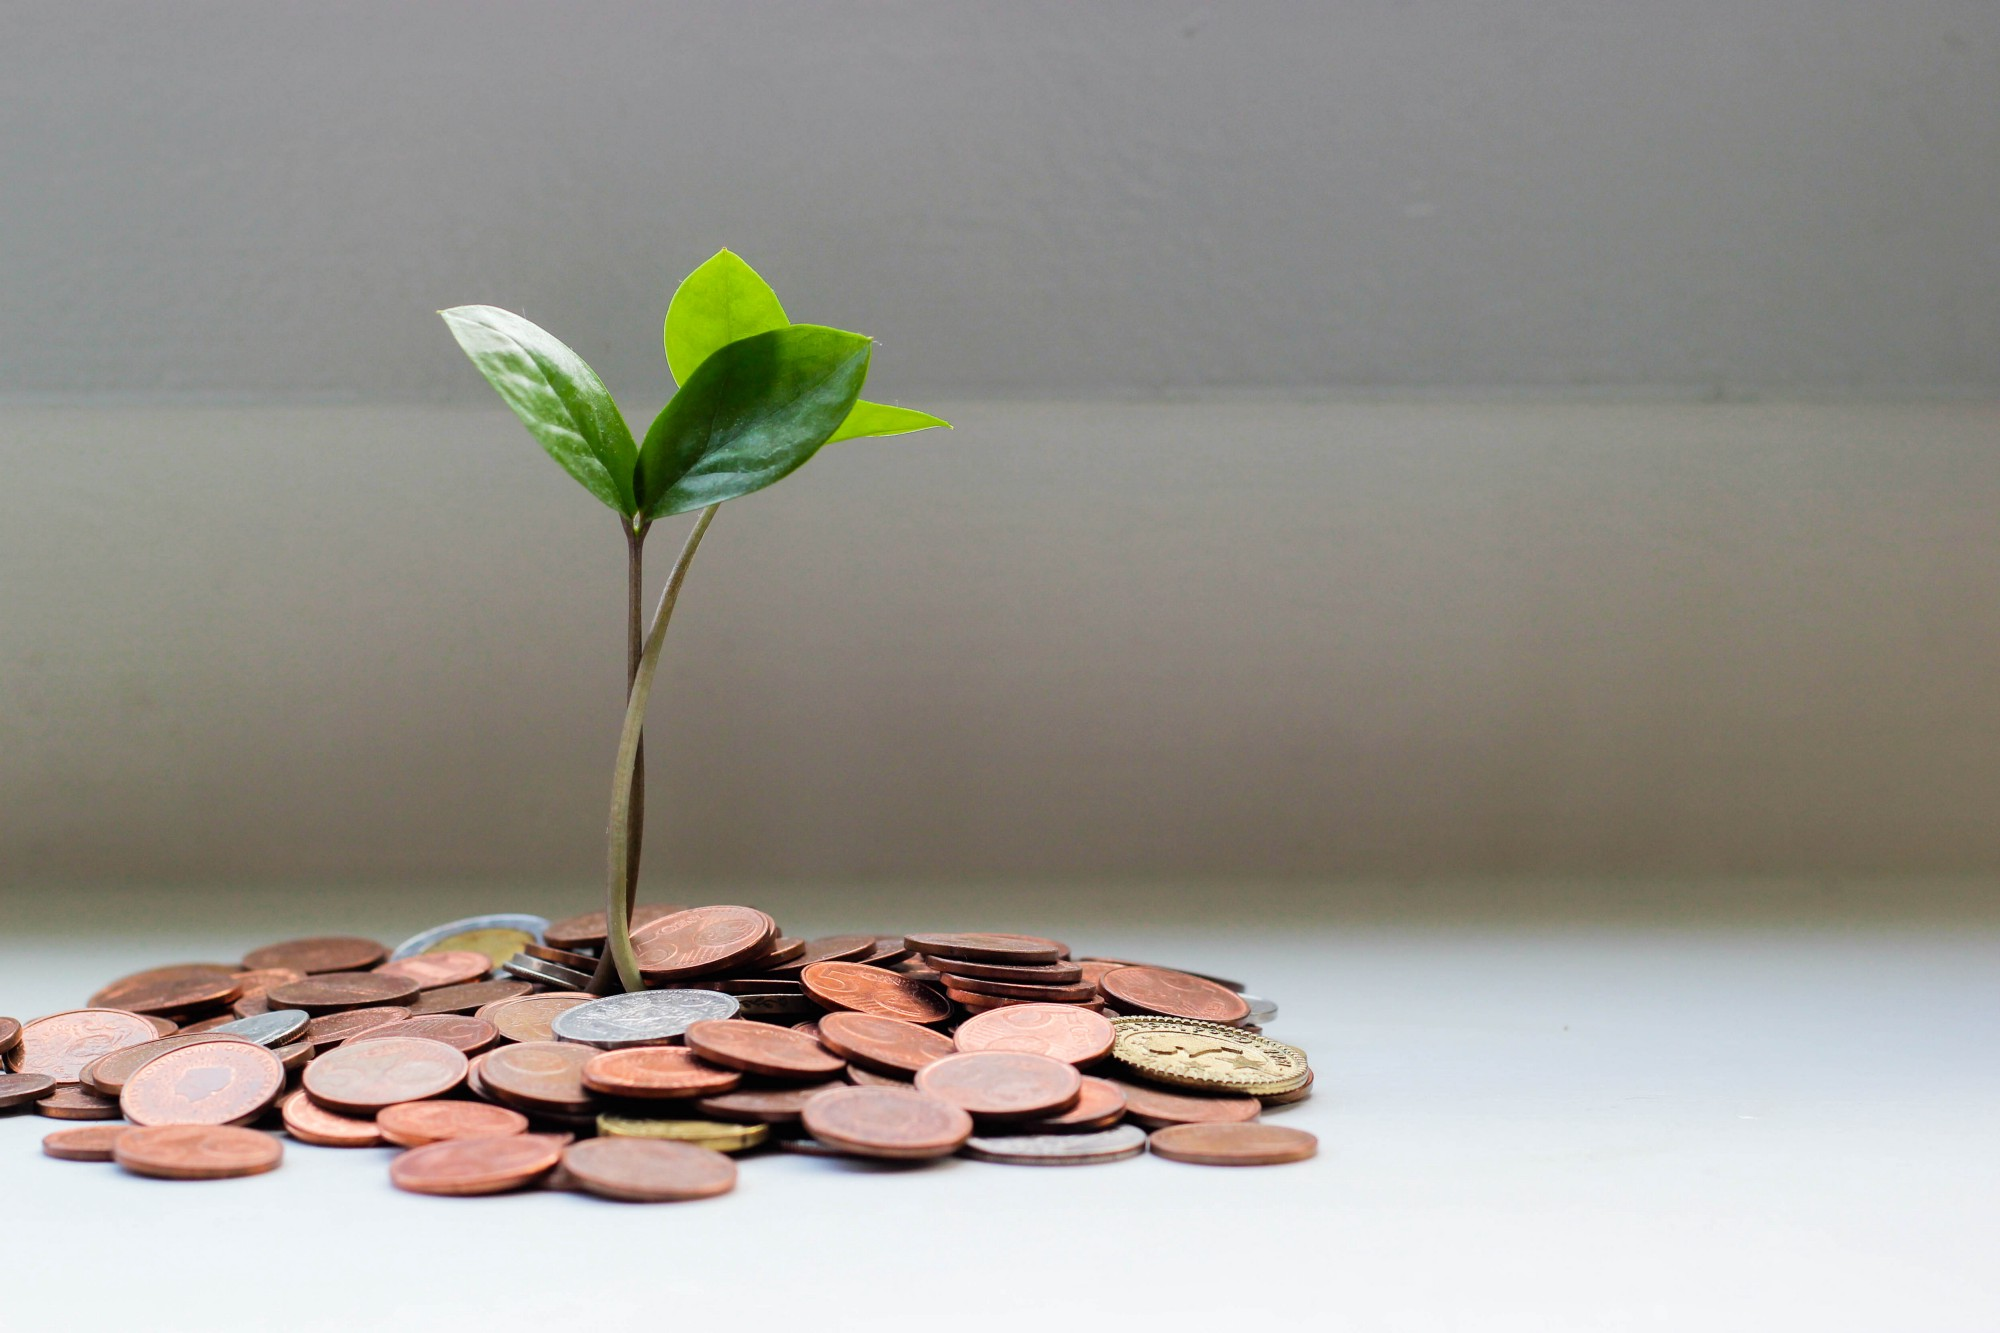 A plant grows out of some coins